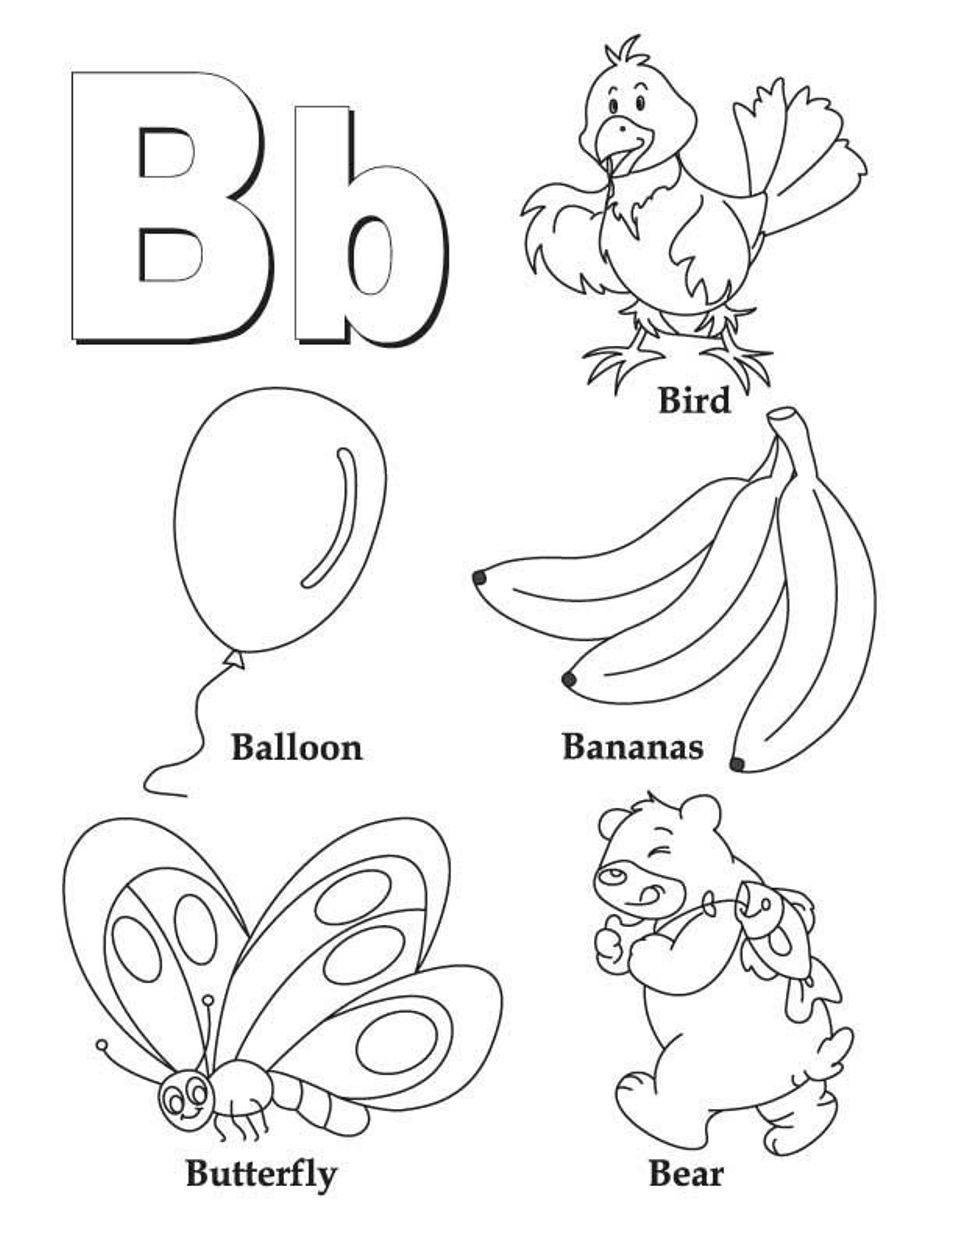 Letter B Coloring Pages Preschool And Kindergarten A To Z Coloring Pages